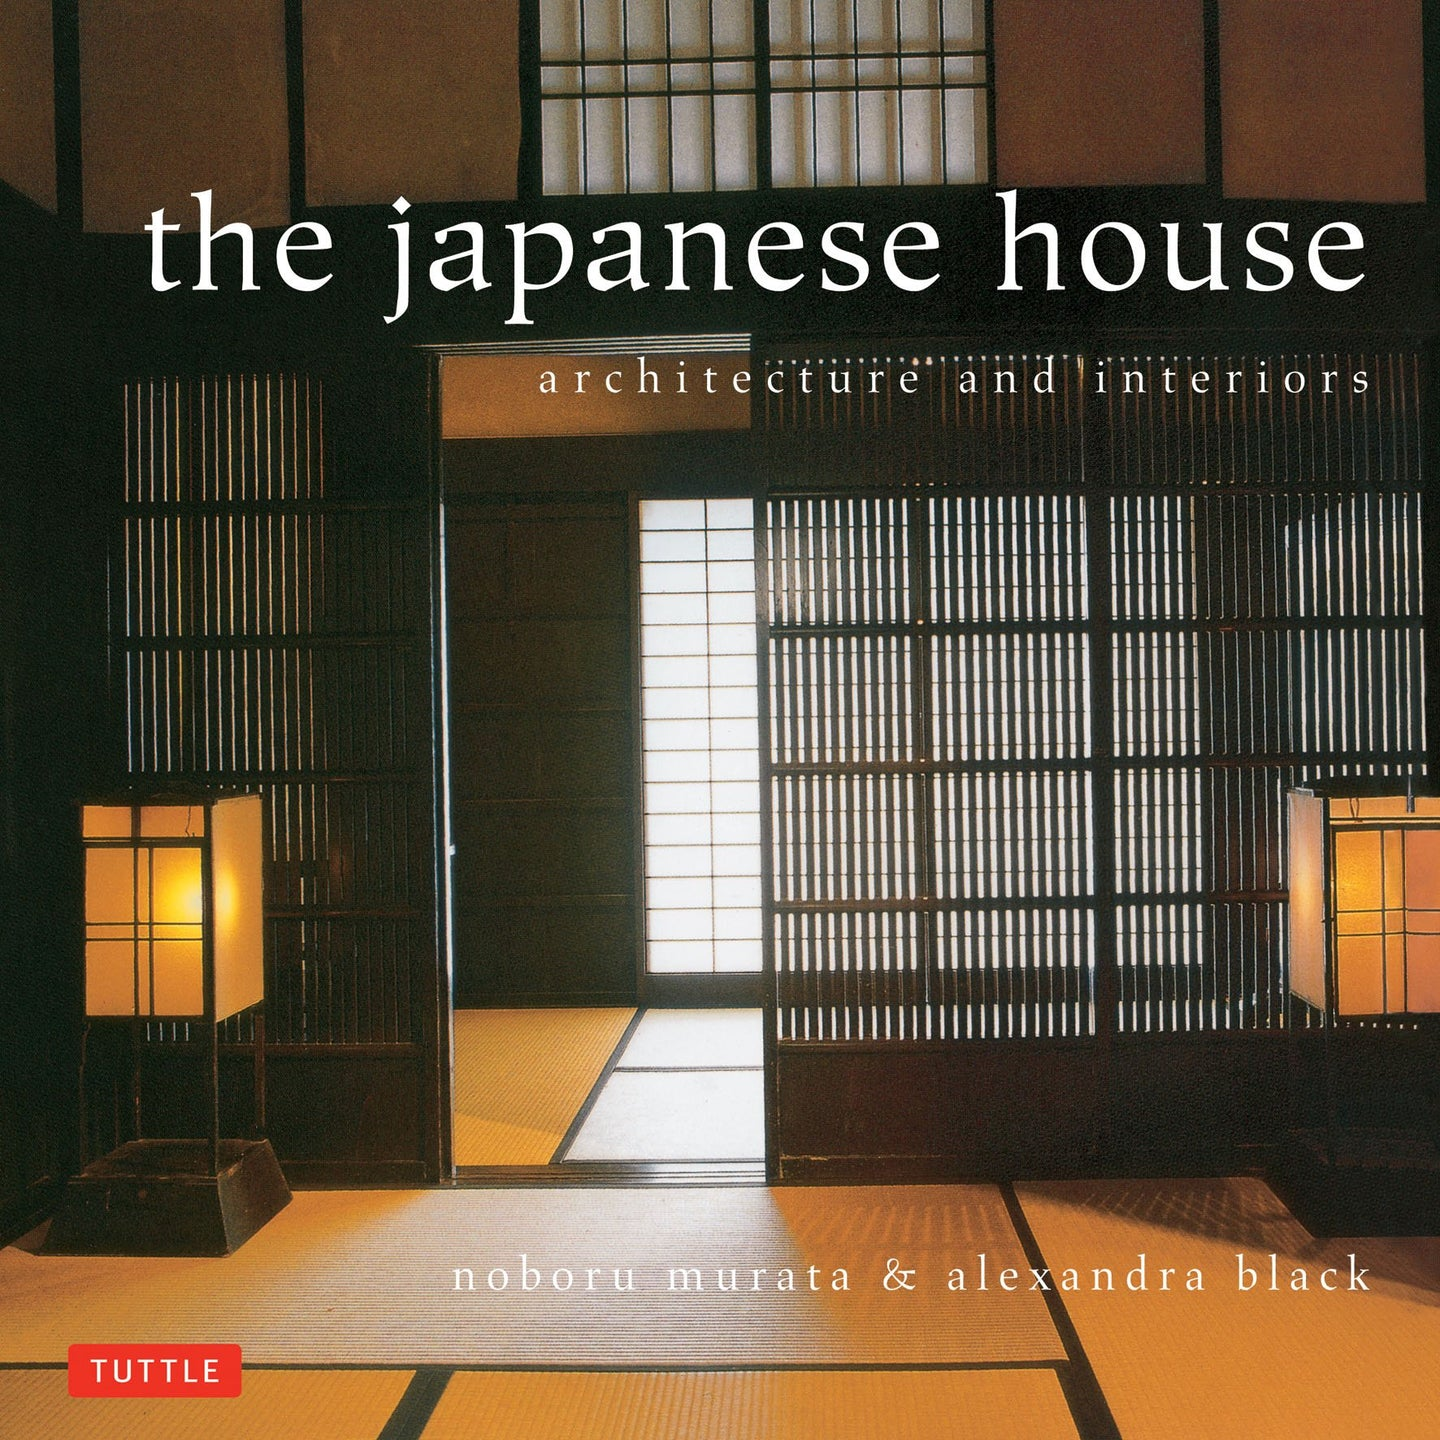 The Japanese House: Architecture and Interiors - Noboru Murata, Alexandra Black